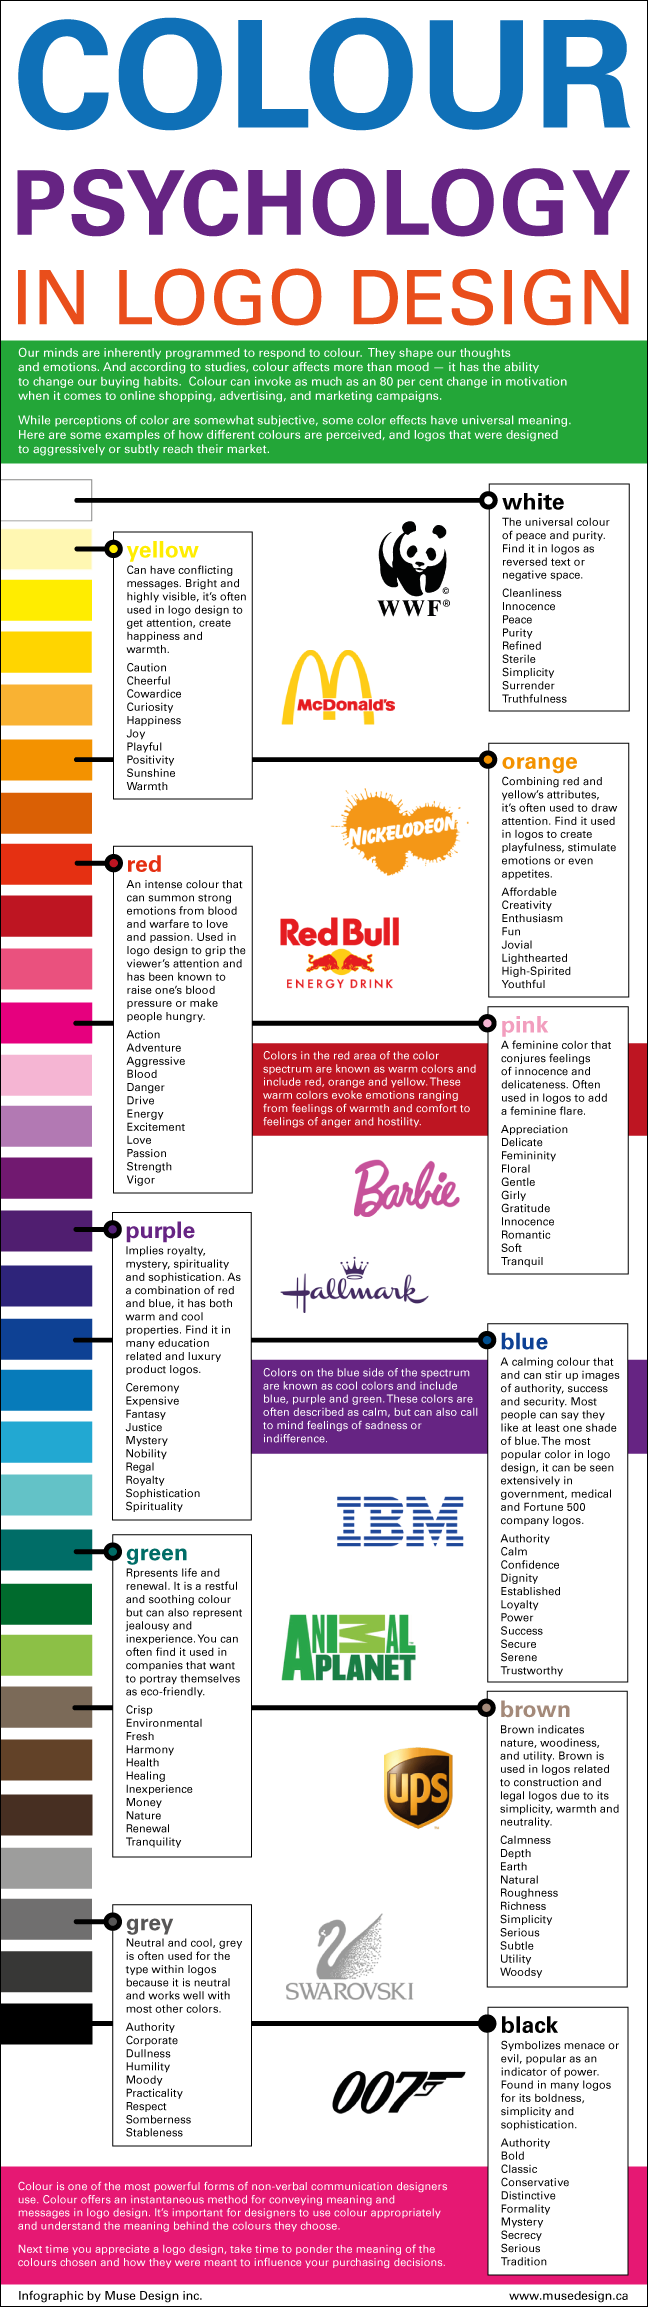 Art color psychology - Colour Psychology In Logo Design